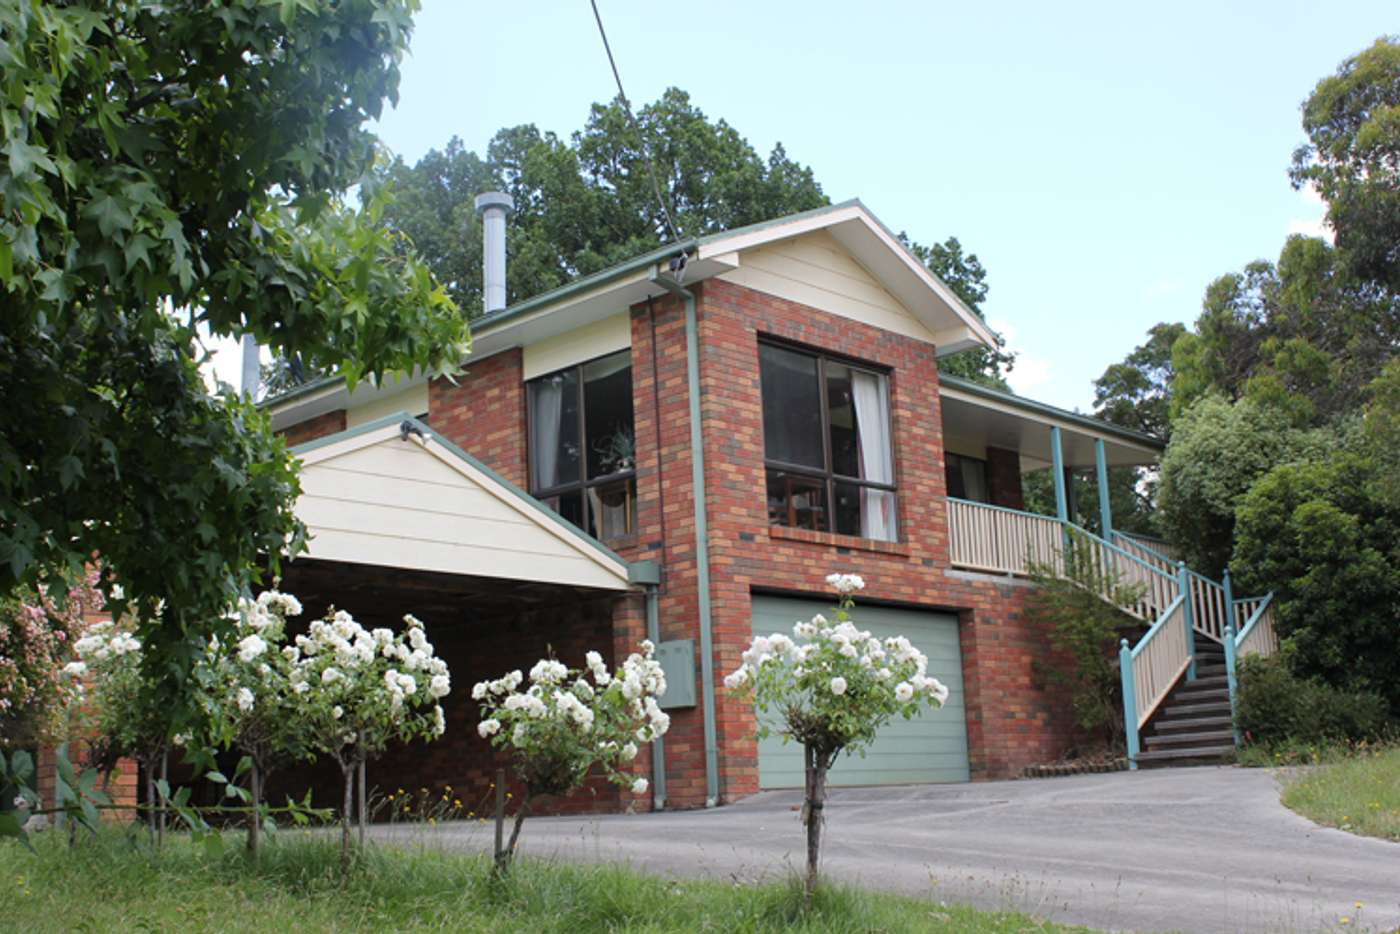 Main view of Homely house listing, 110 Smith Street, Macedon VIC 3440